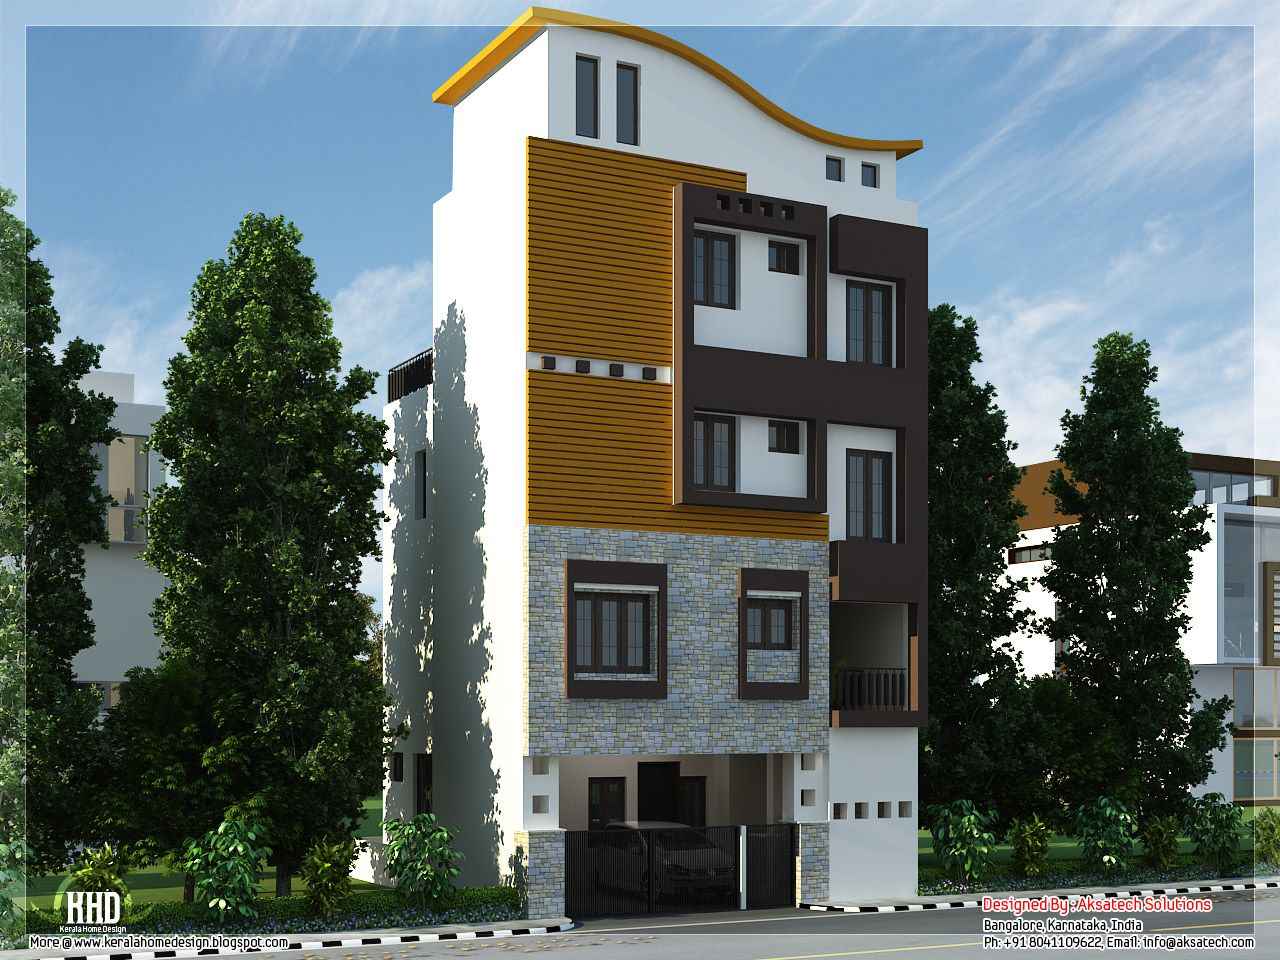 3 floor house design derby pinterest house design for Kerala building elevation